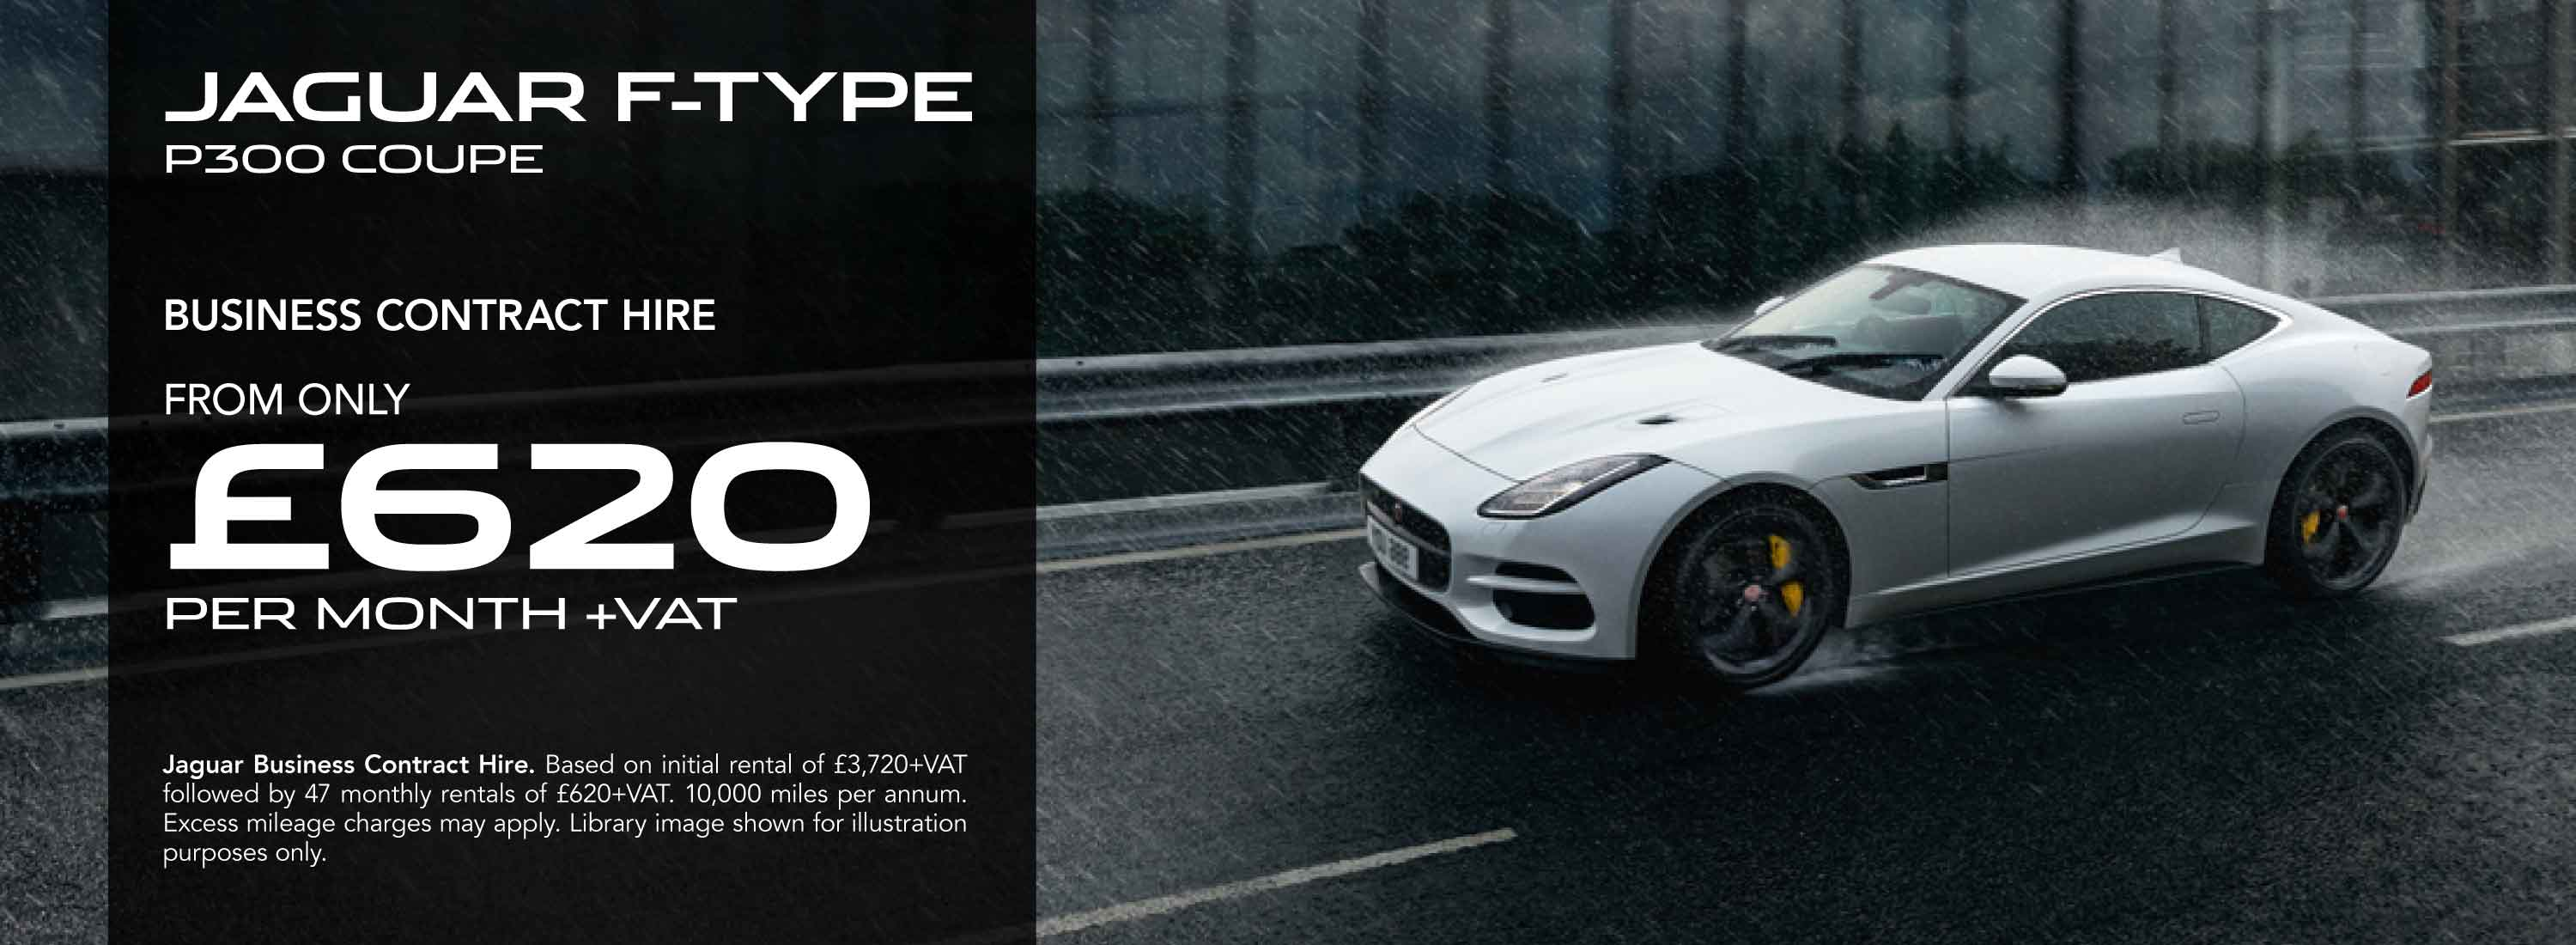 Jaguar F-Type Business Contract Hire Offer